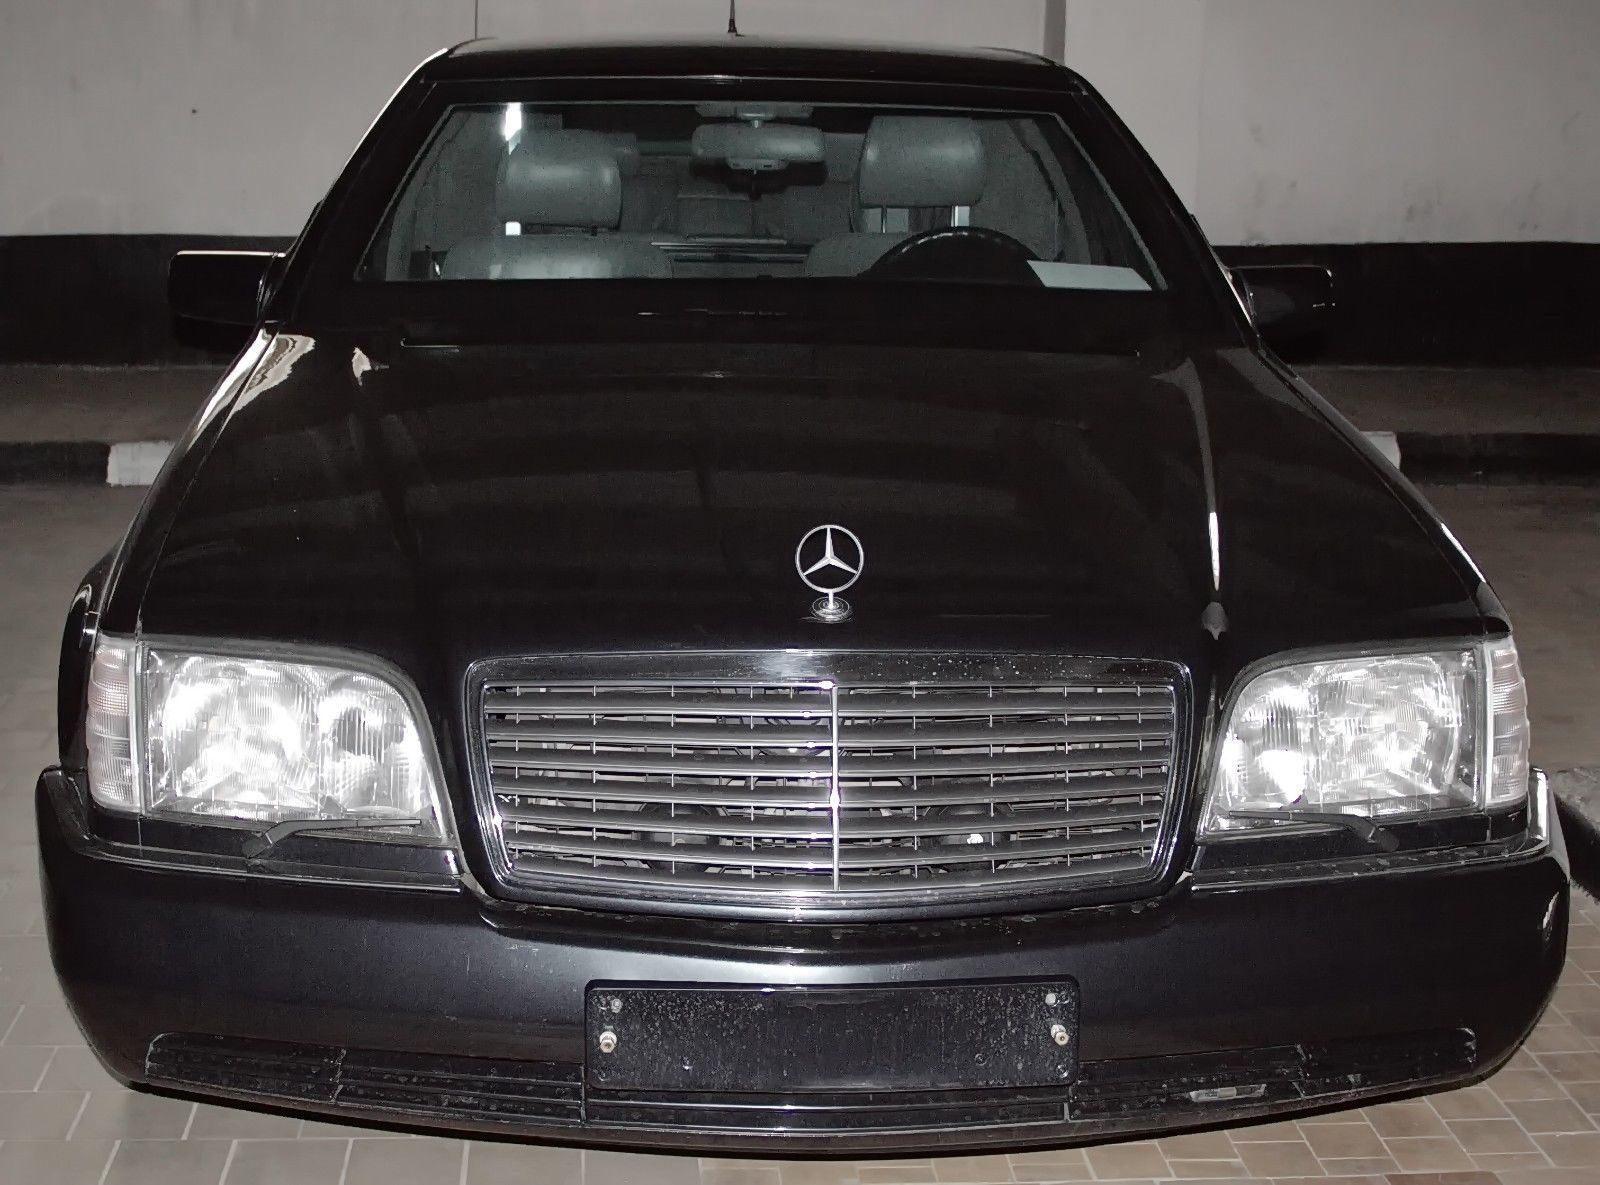 Putin S Mercedes S600 Pullman Guard W140 Armored Limo For Sale